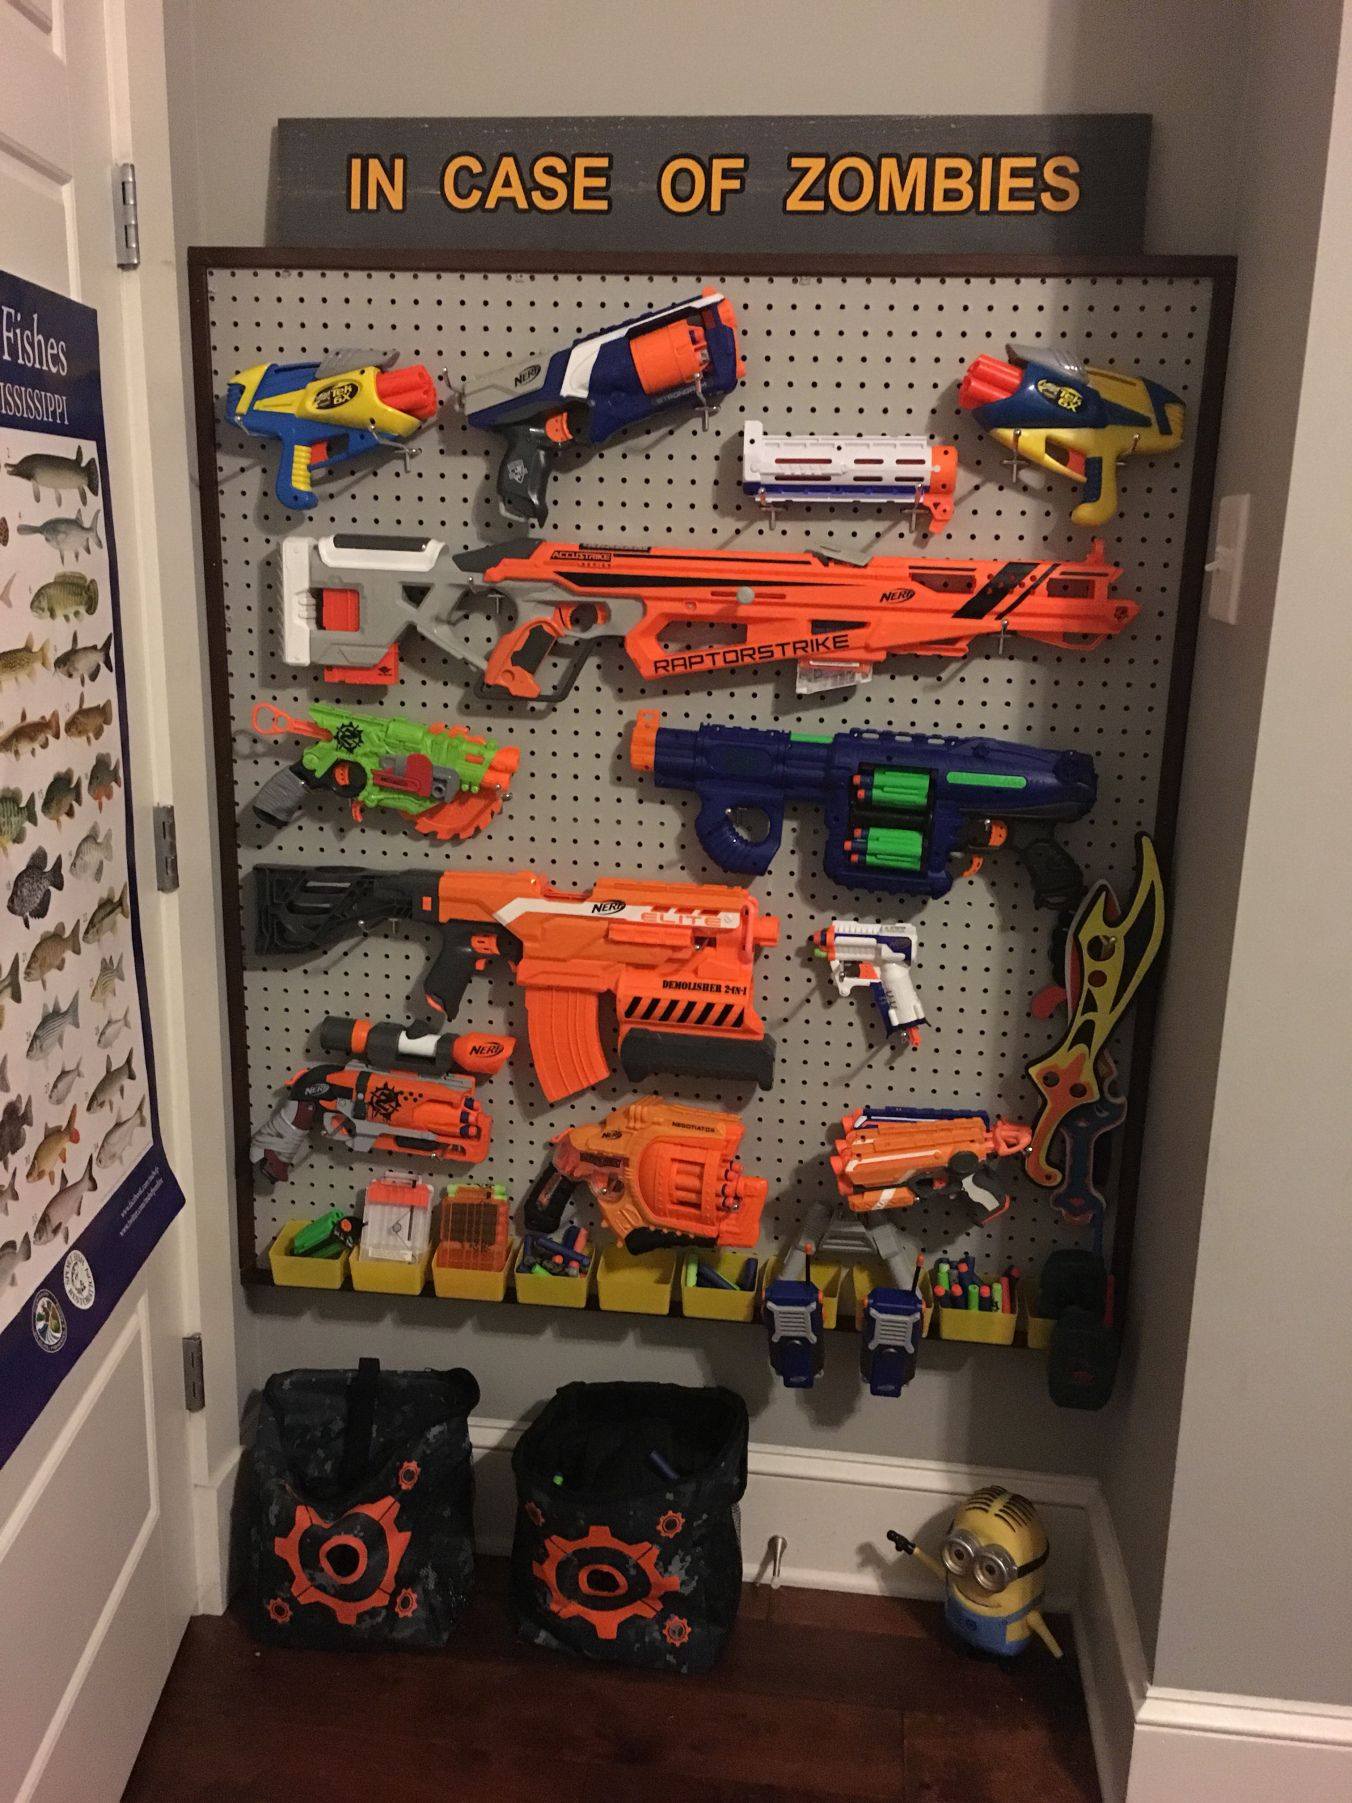 Soooooo…….all our 4 year old wanted for Christmas was nerf gun stuff